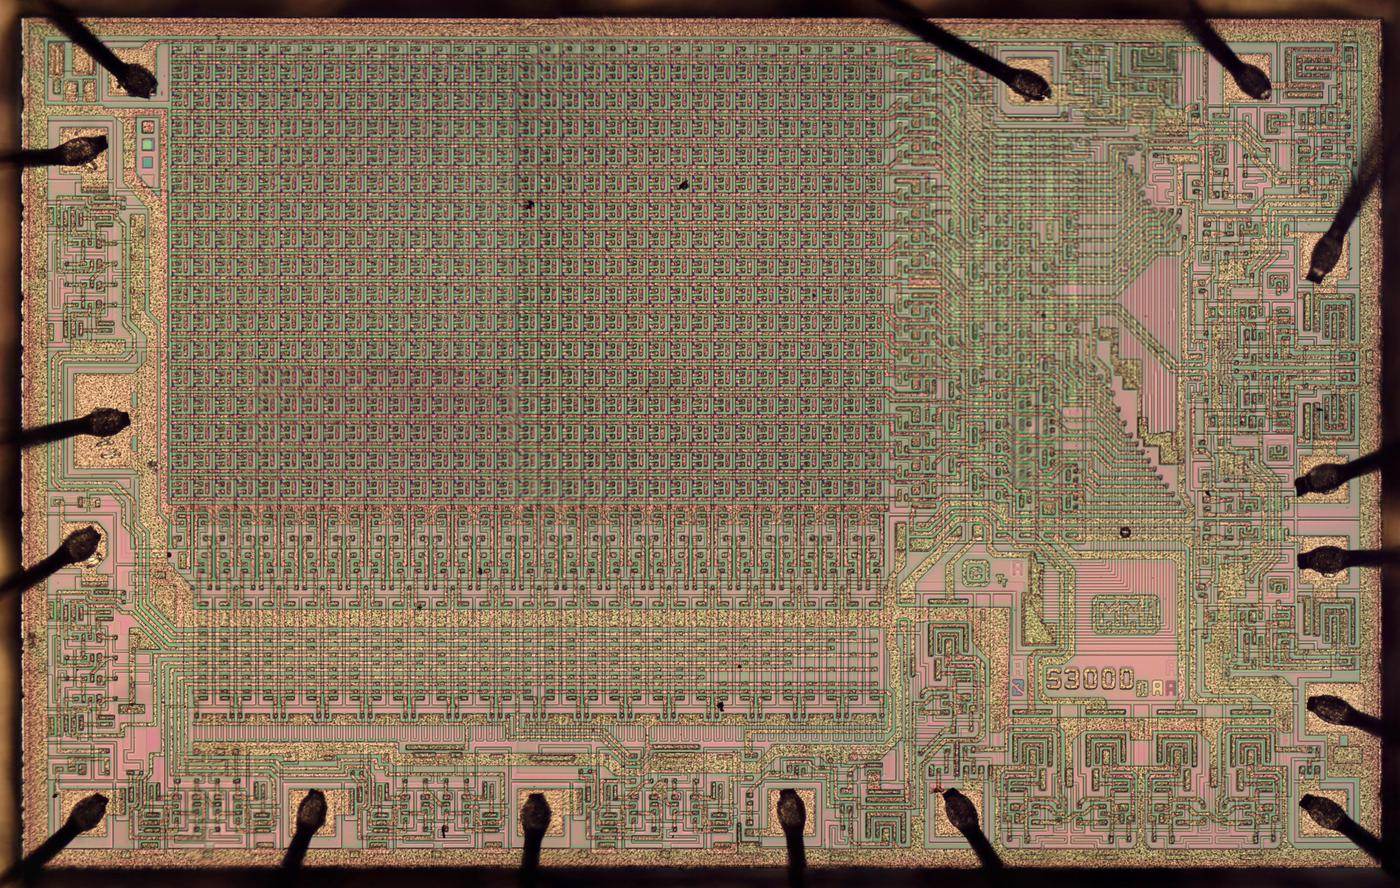 Die of the MMI 5300 PROM chip, holding 1024 bits of information. Click image for a larger version.